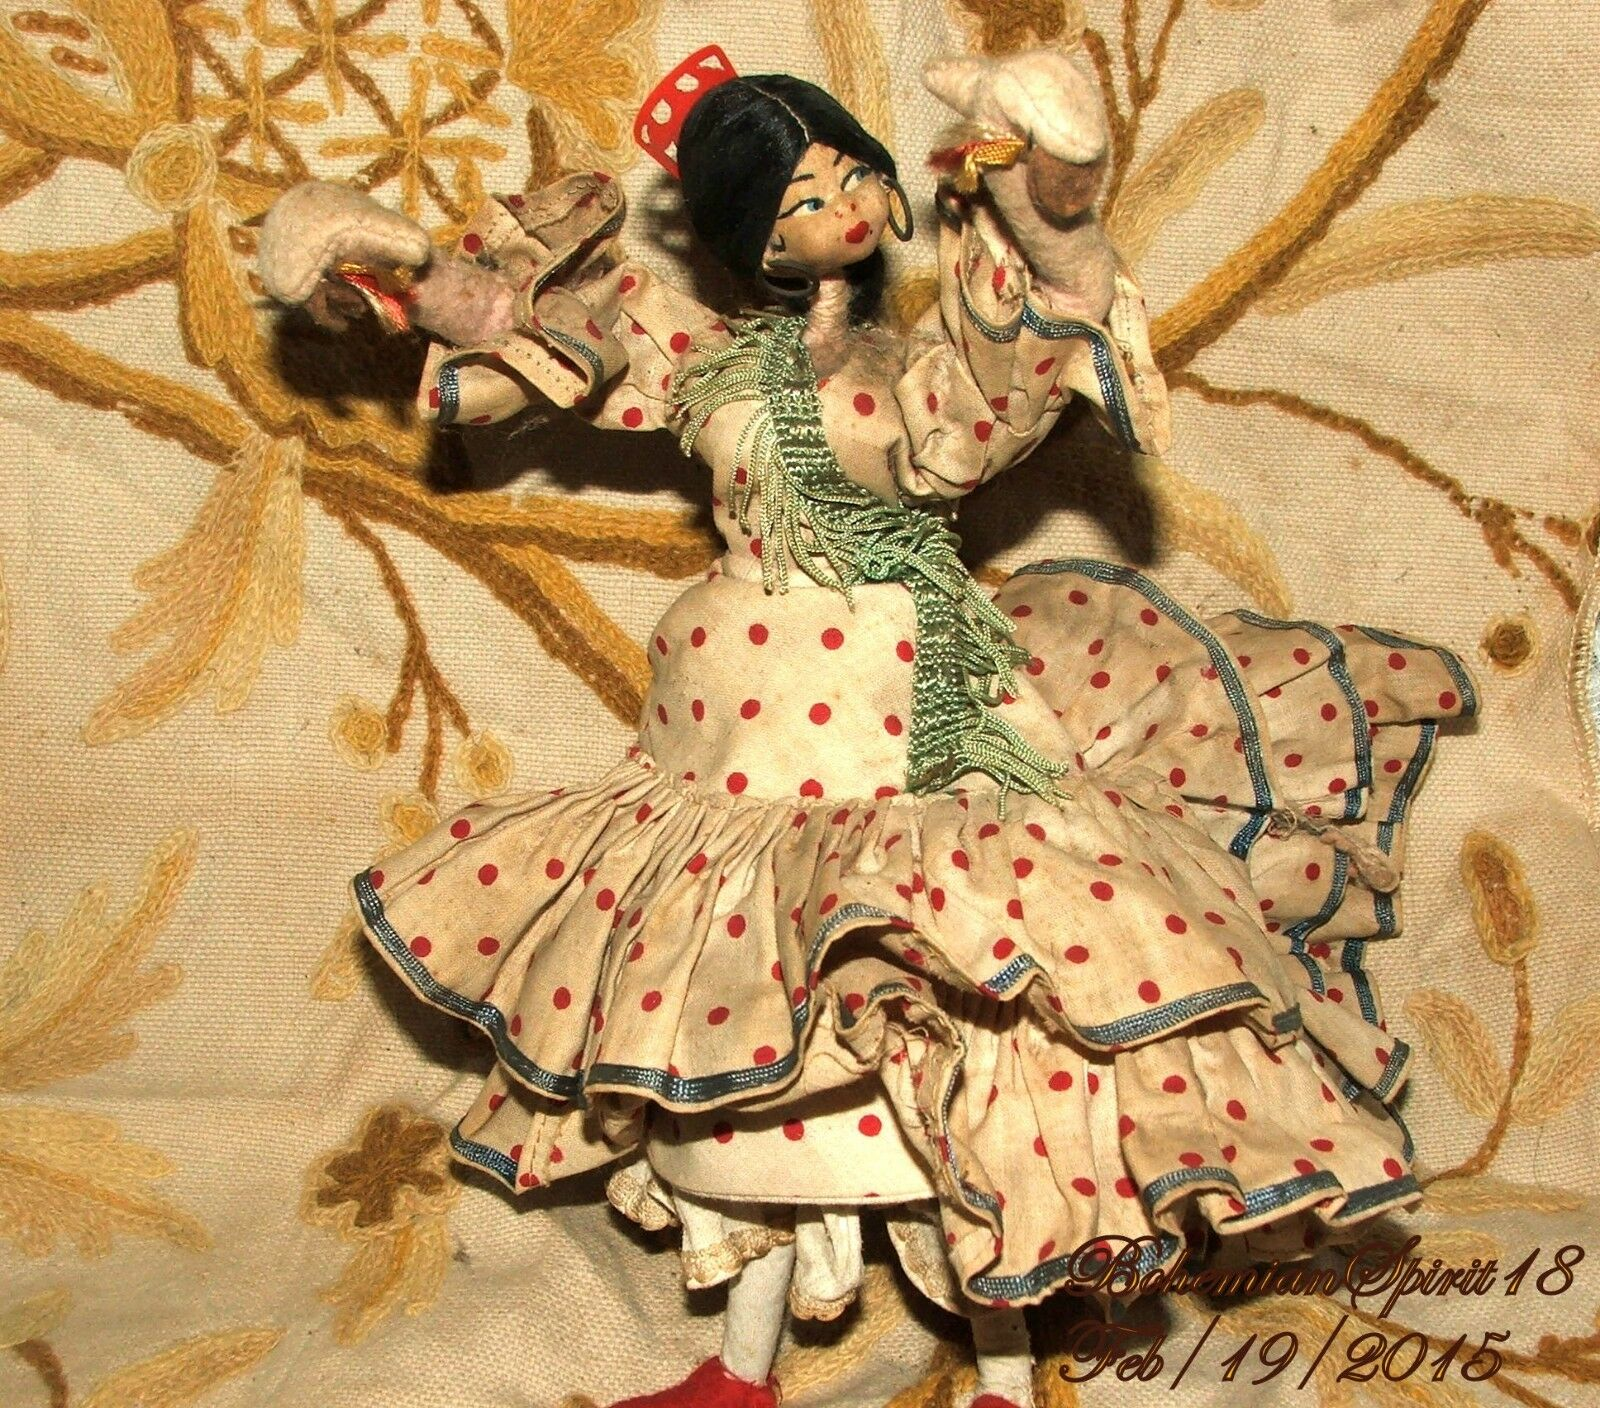 VINTAGE KLUMPY TYPE  FLAMENCO SPANISH DANCER  FIGURINE CLOTH COLLECTIBLE bambola  fino al 70% di sconto